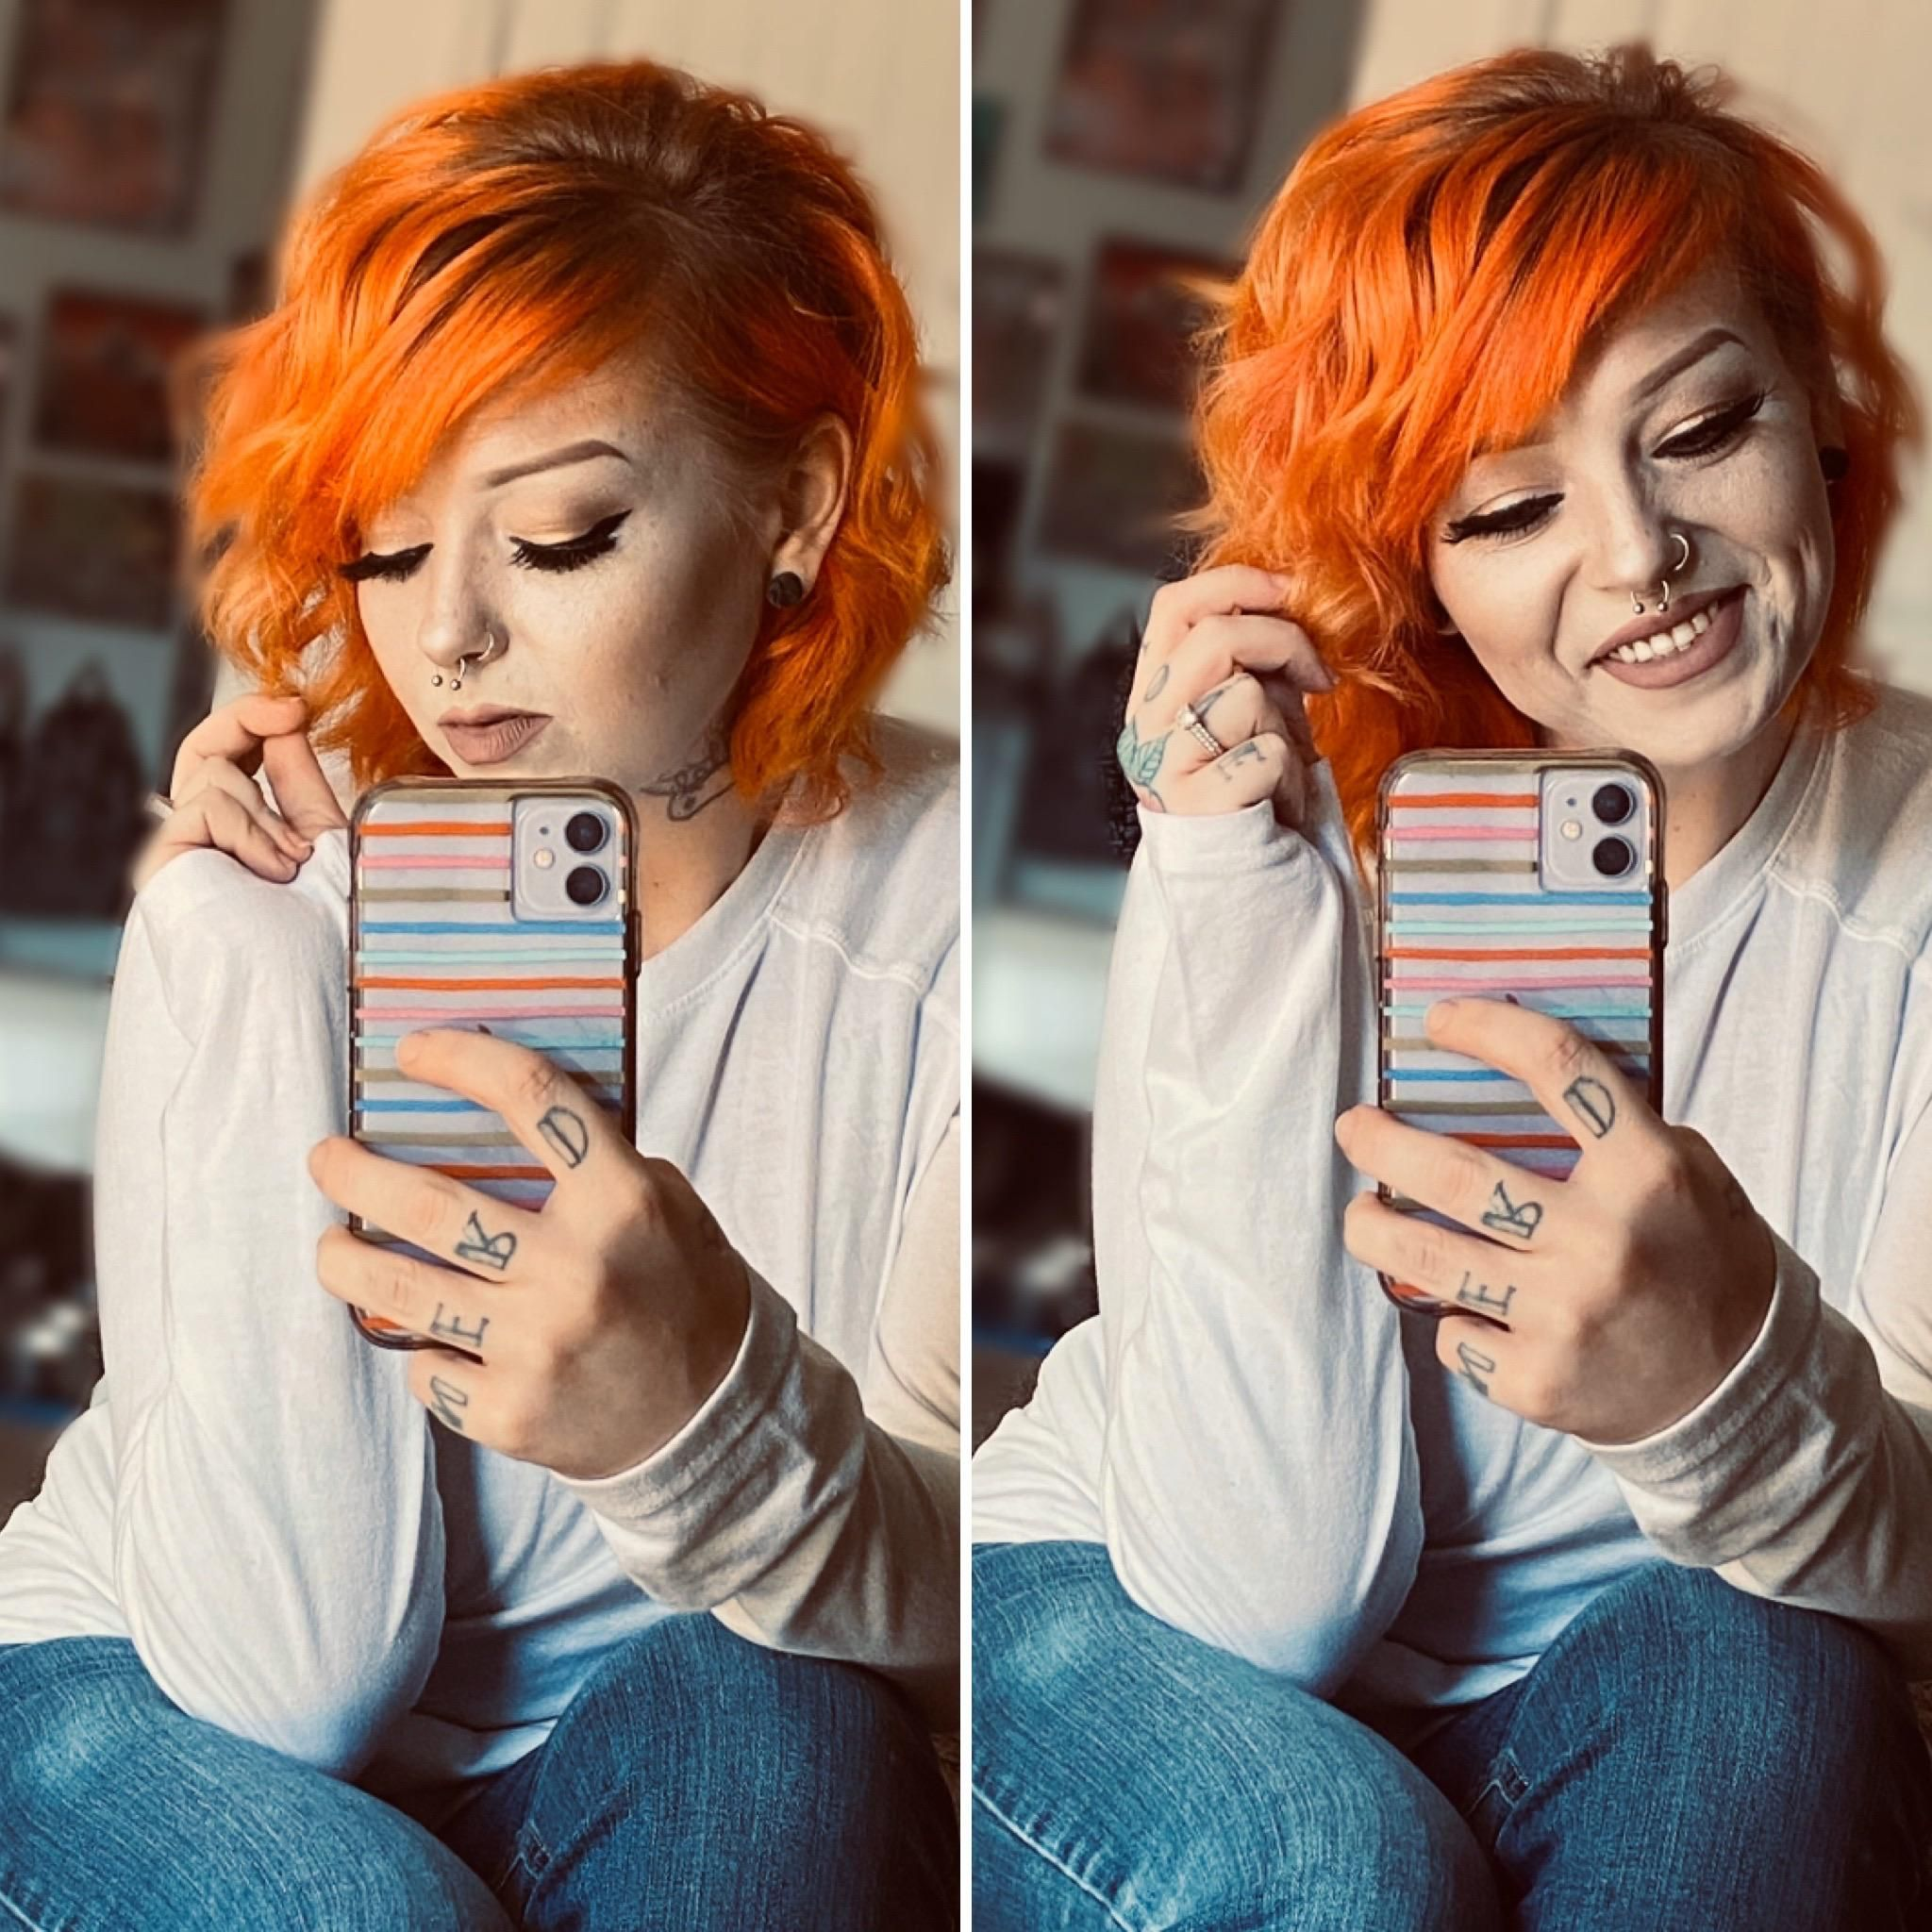 Orange Hair Beauty Skin Deals Me Fashion Love Cute Style Women Makeup In 2020 Celebrity Hair Colors Celebrity Hairstyles Hair